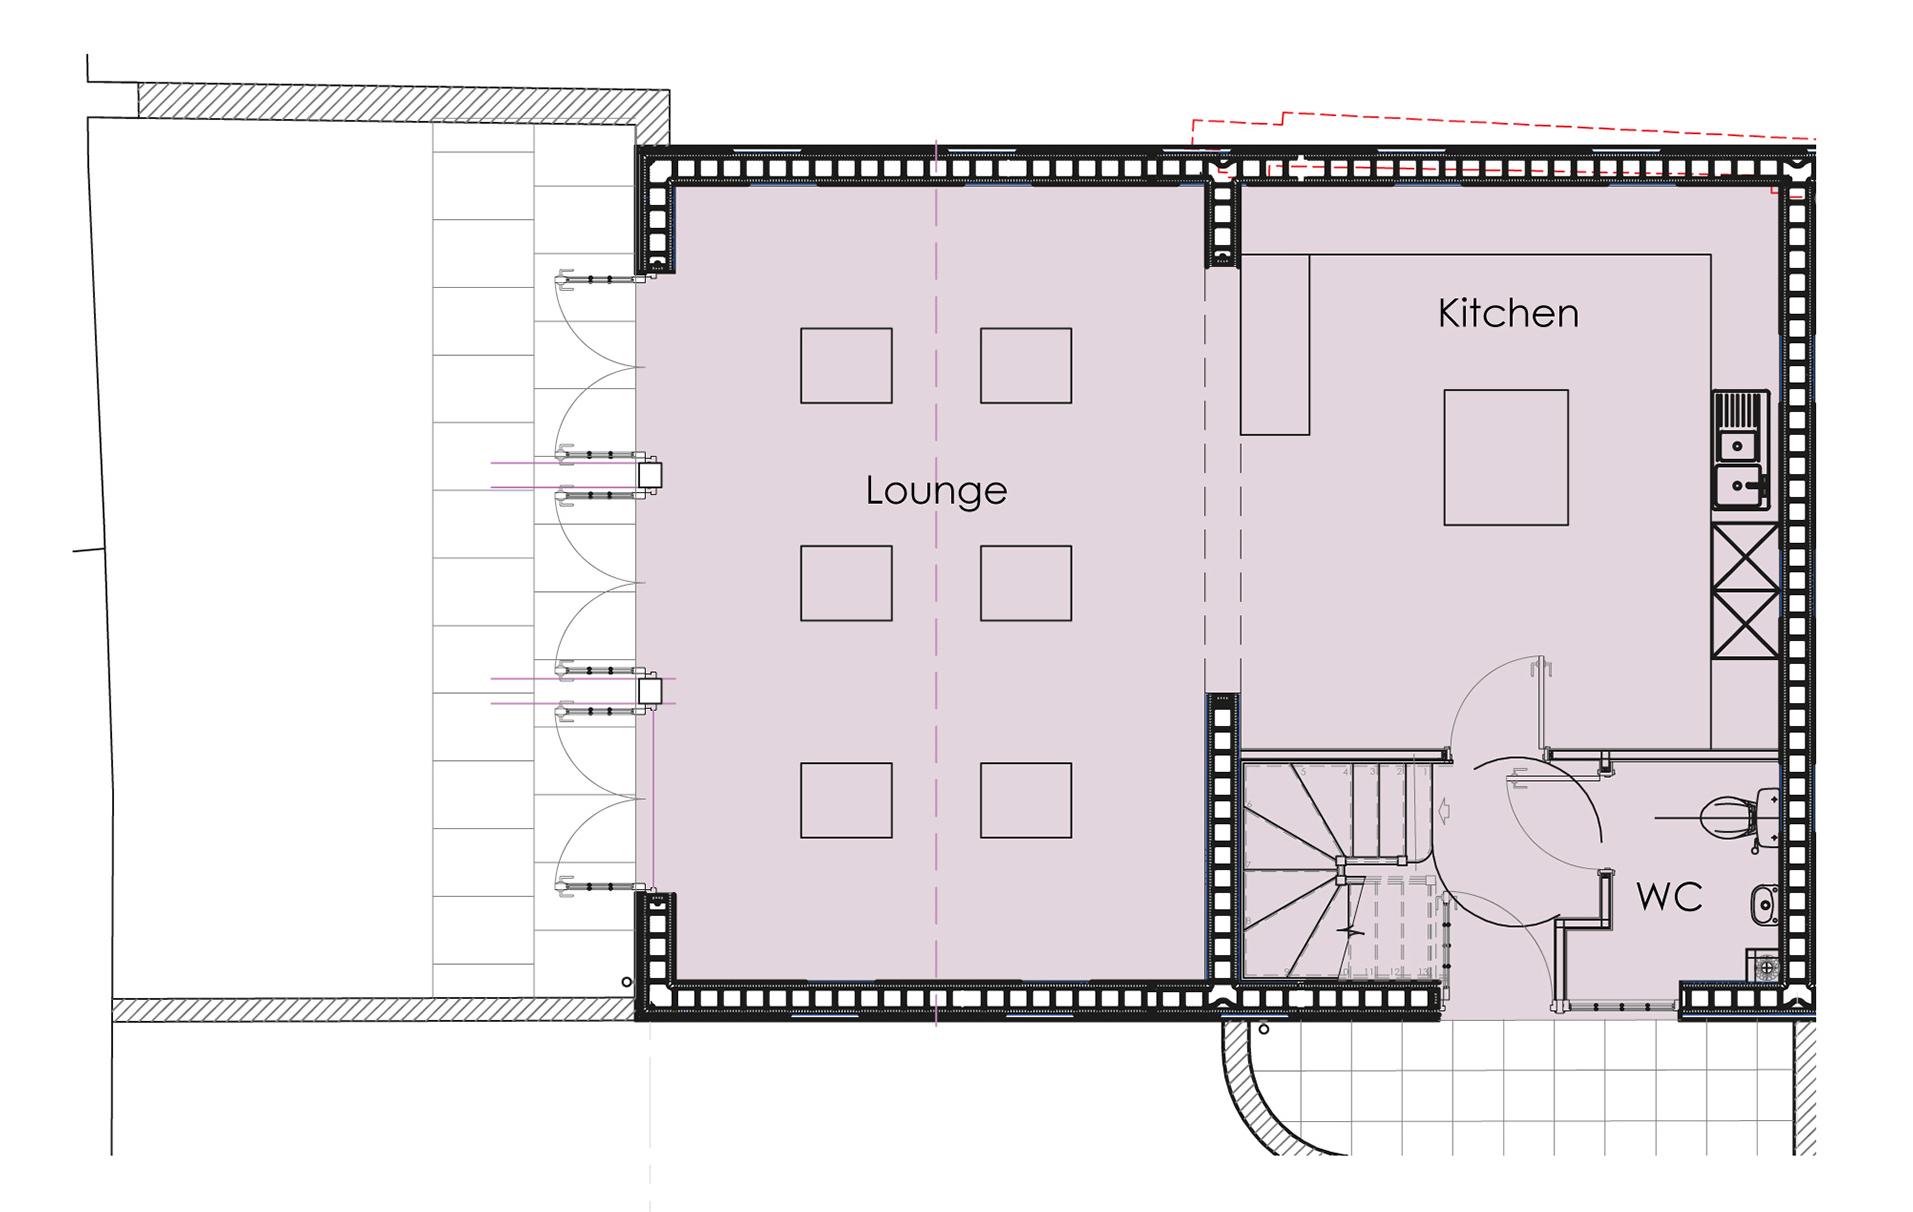 Ground floor - click on plan to enlarge